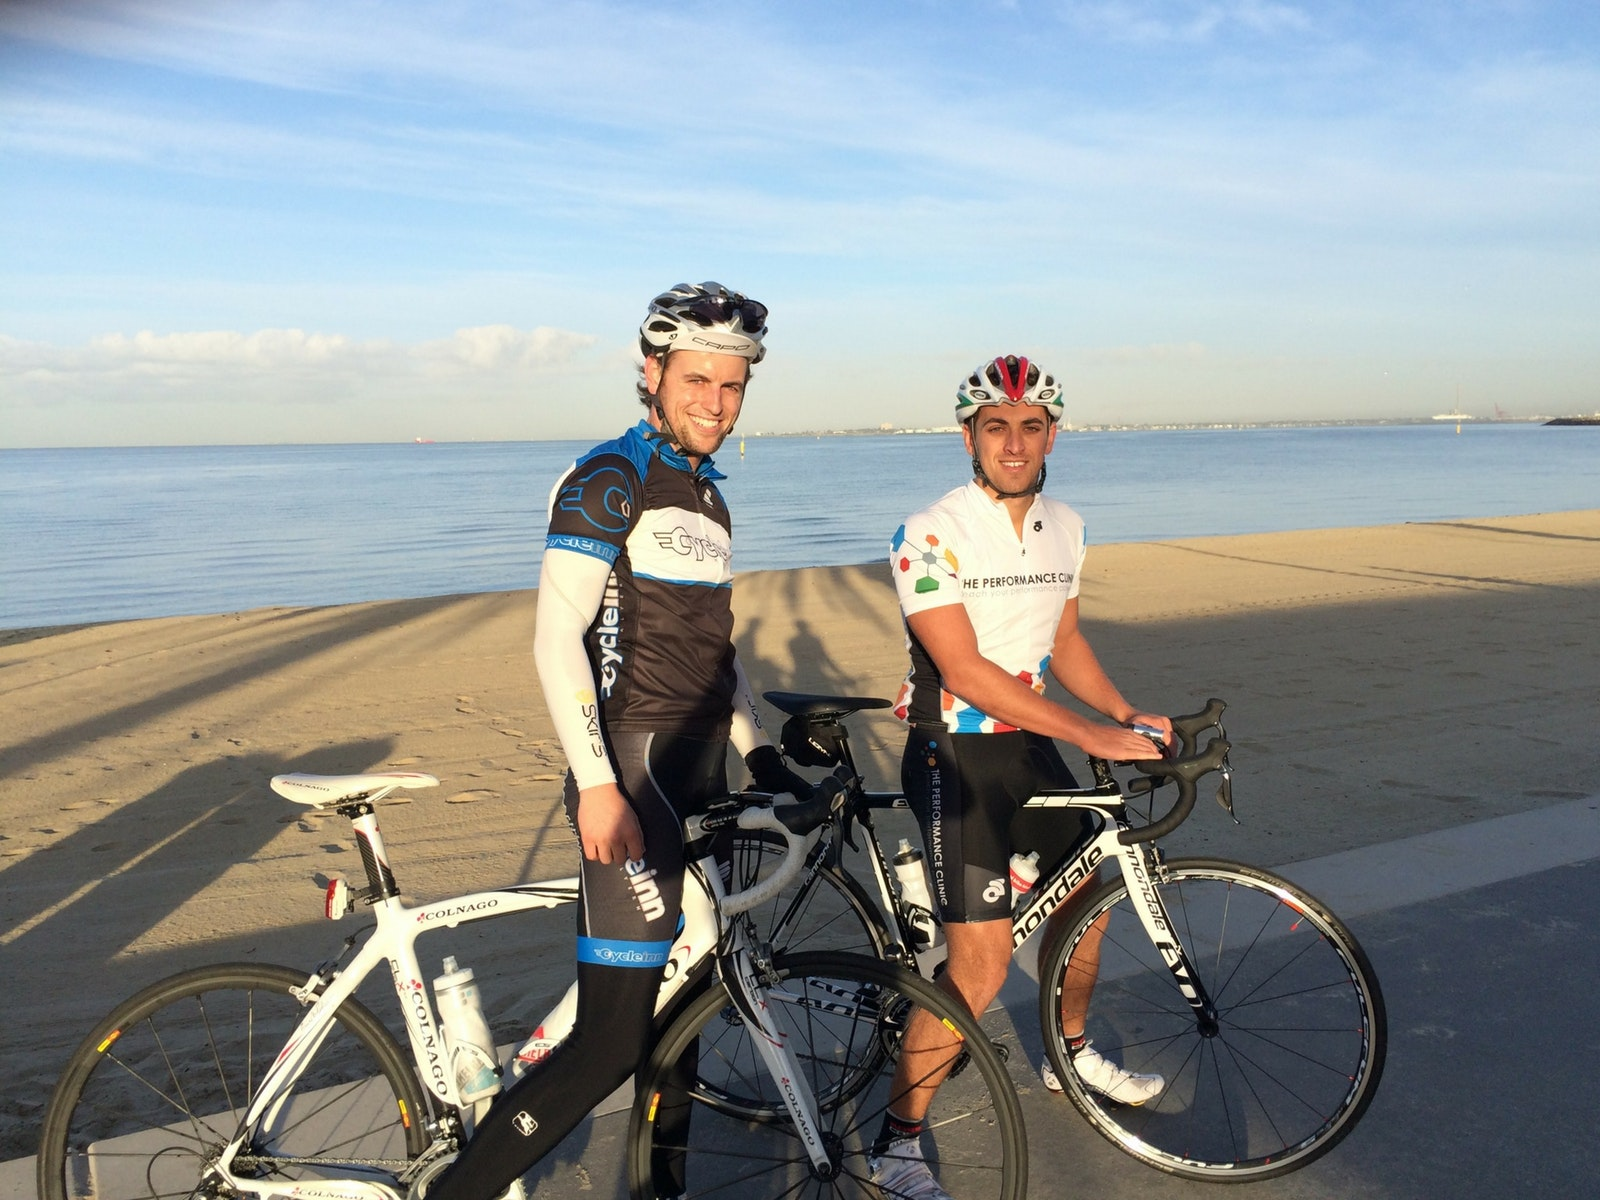 Livelo Guided Tour - Charlie and Paul on Beach Road at St Kilda